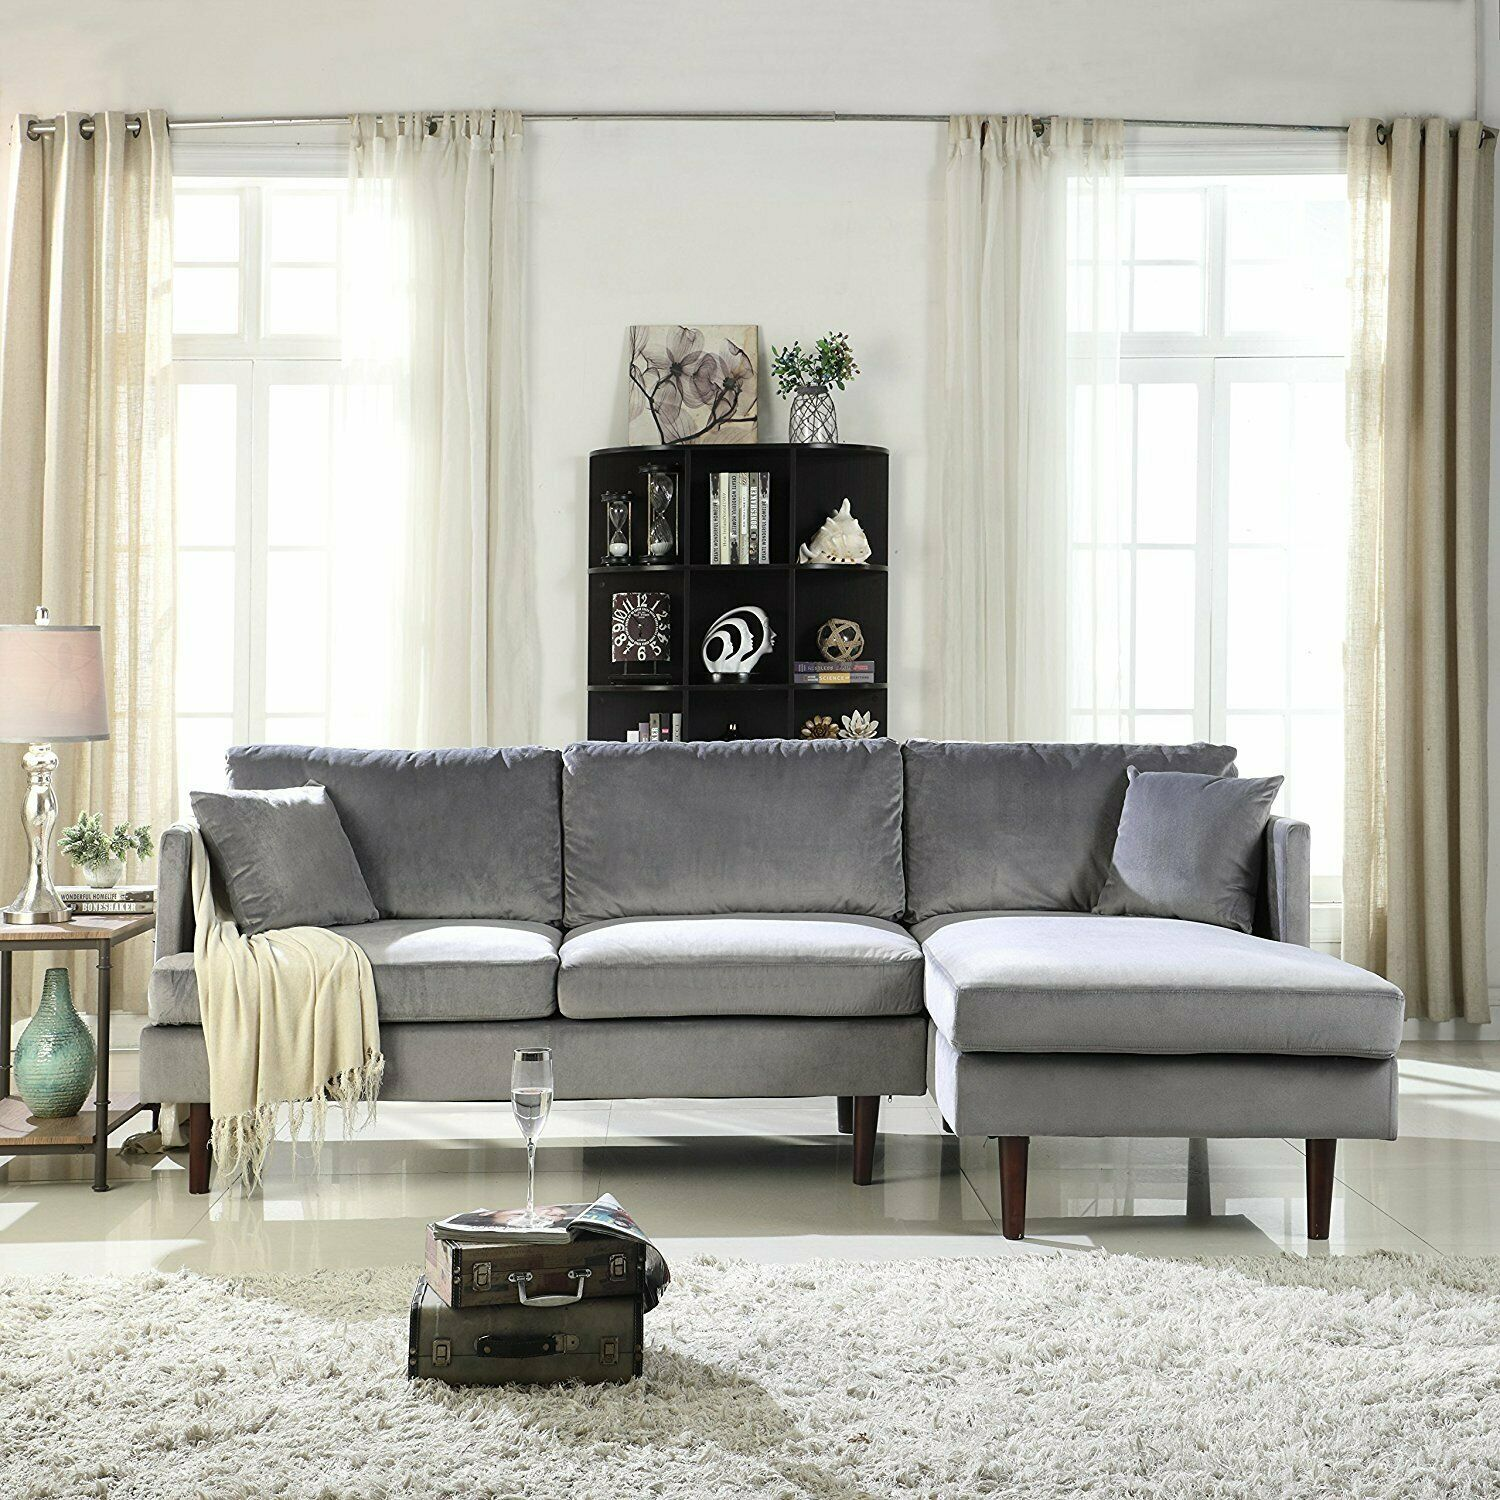 Image of: Classic Microfiber Sectional Sofa W Removable Cushions 2 Accent Pillows Grey For Sale Online